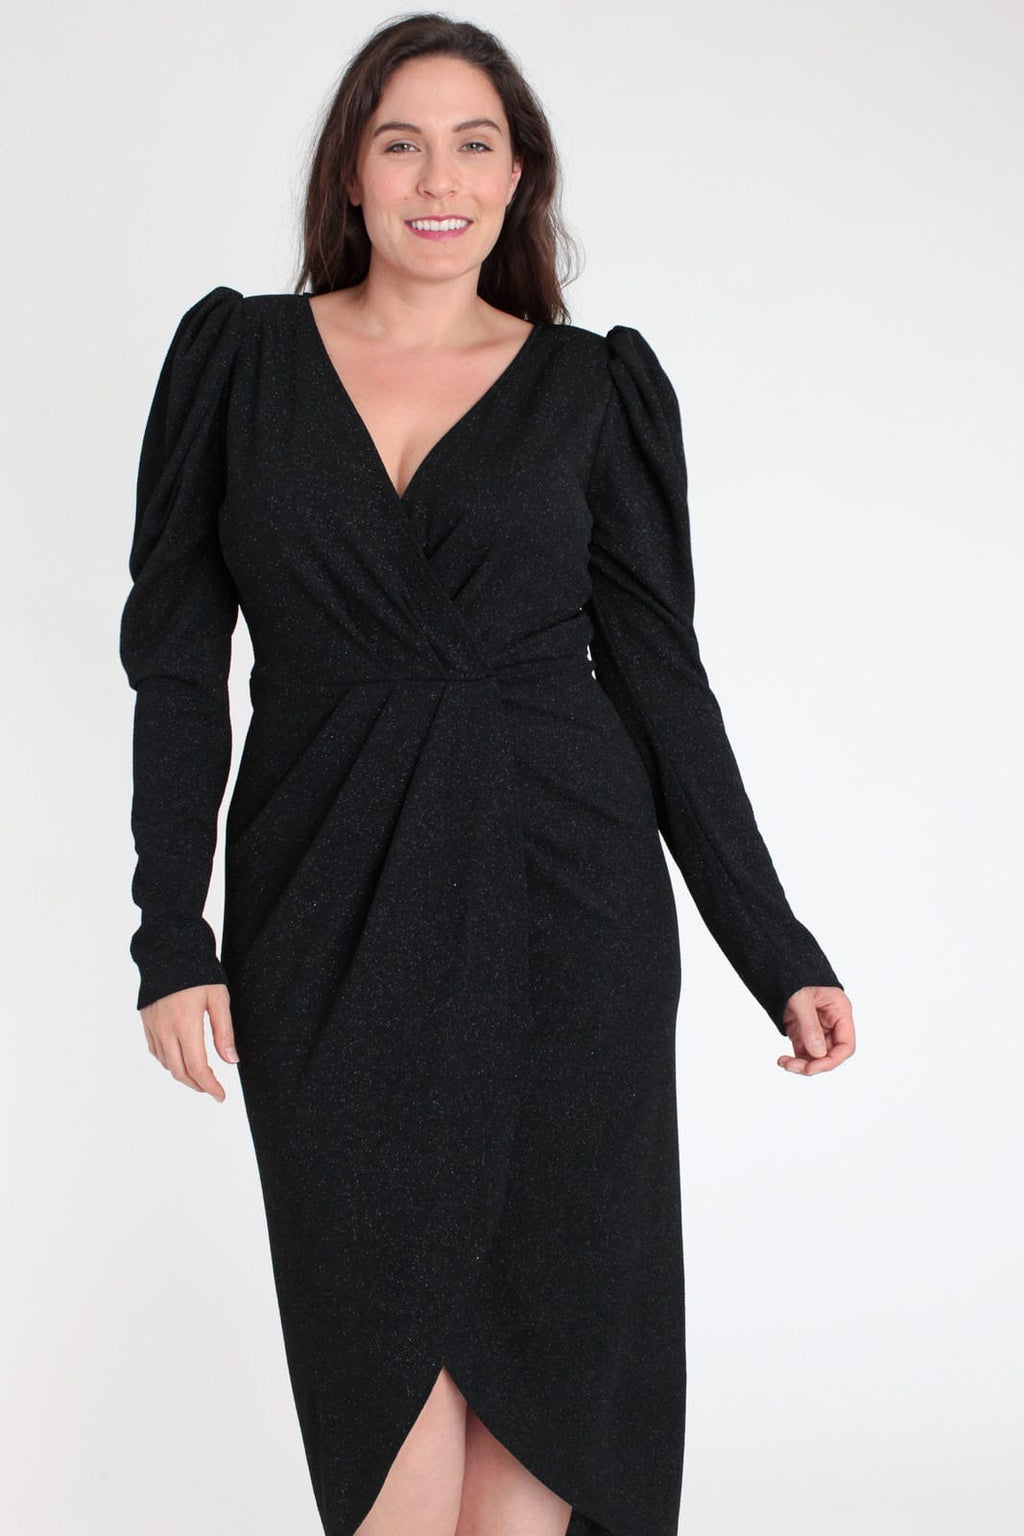 Plus Size Mini Black Dress